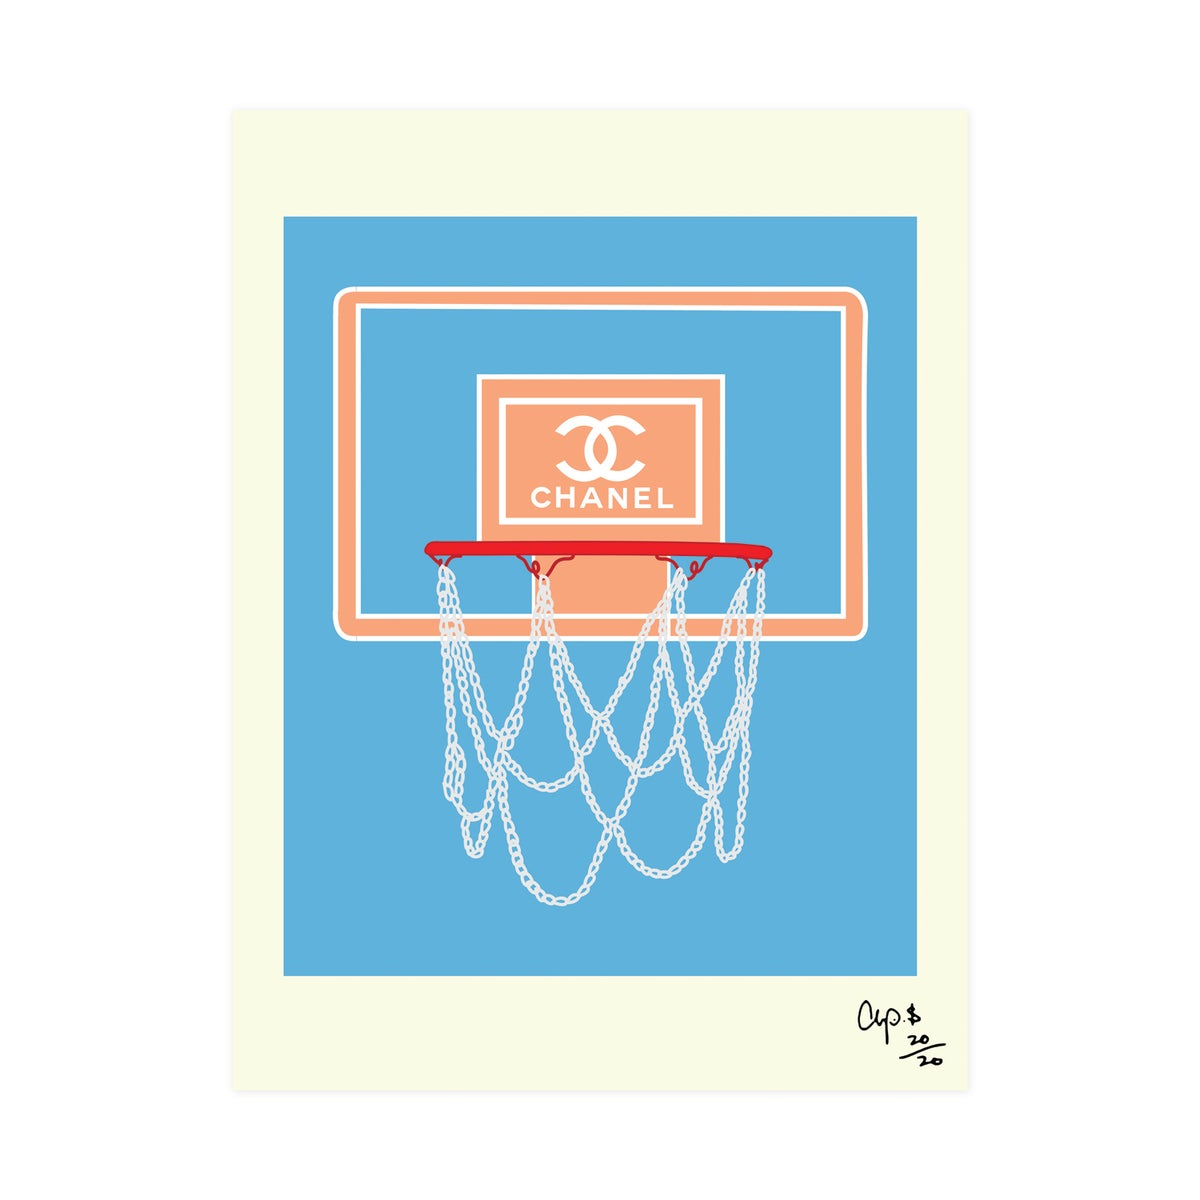 Image of Chanel Basketball Hoop